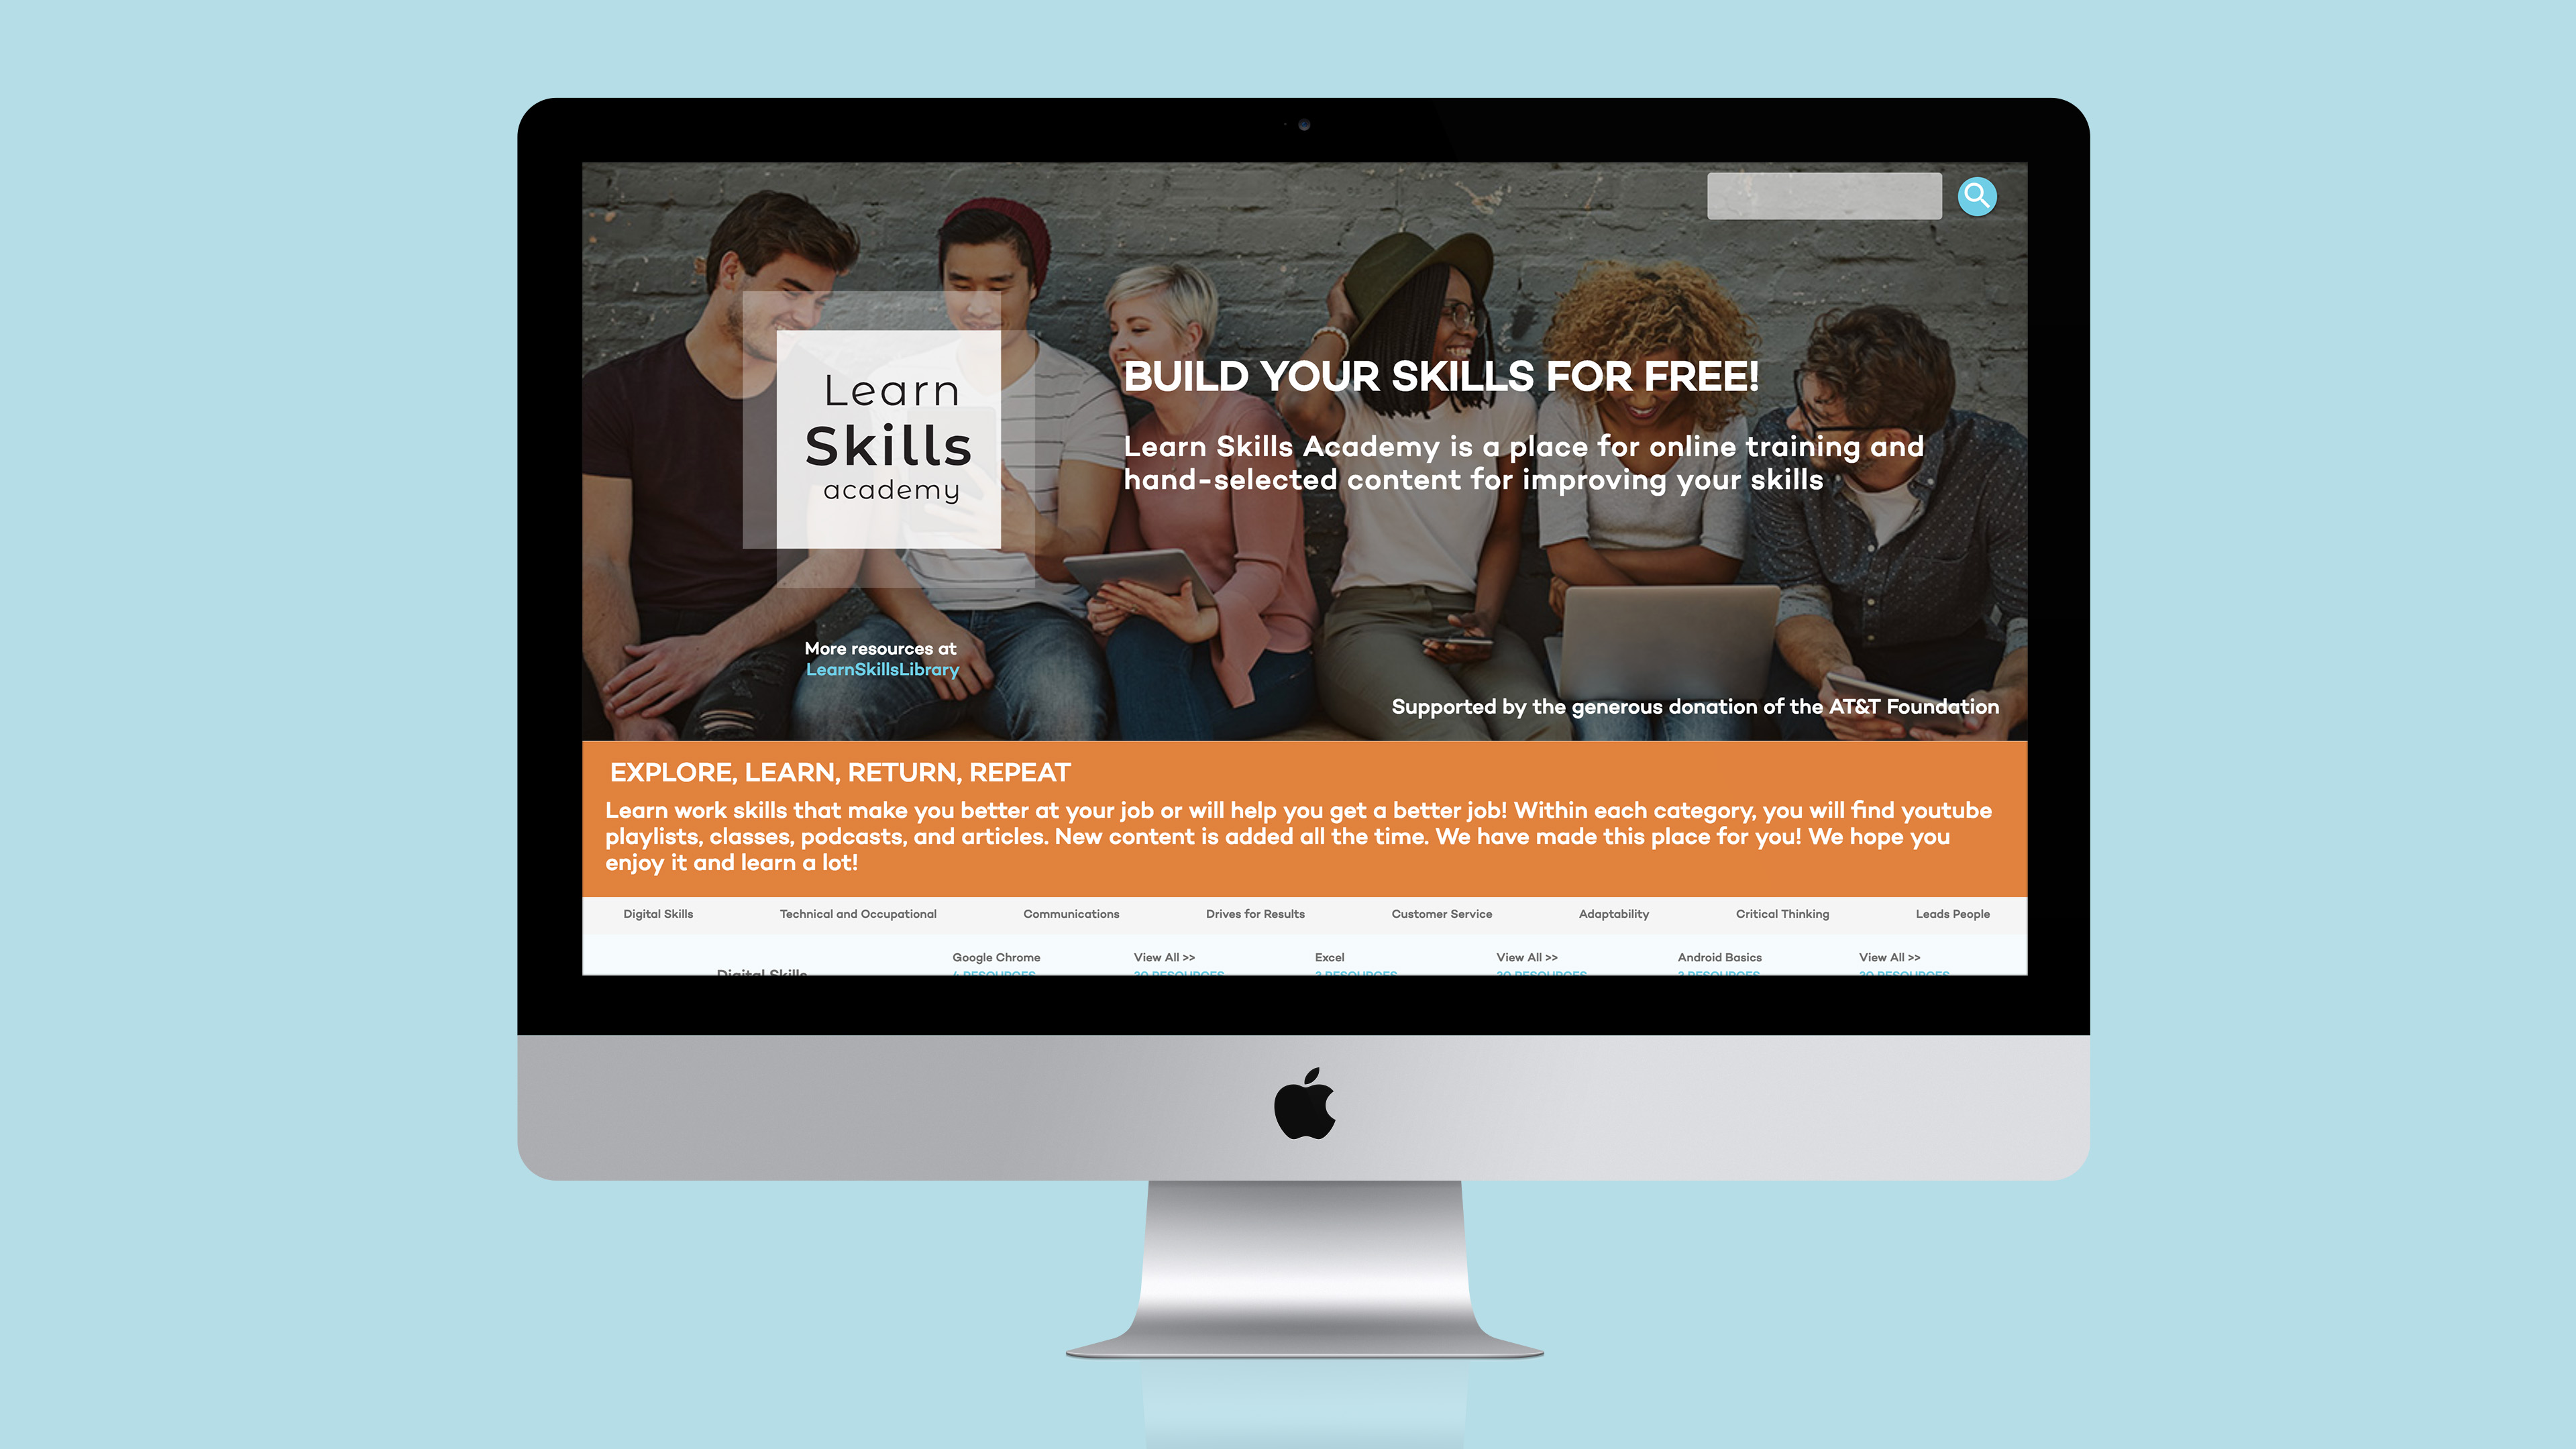 Learn skills academy desktop mock